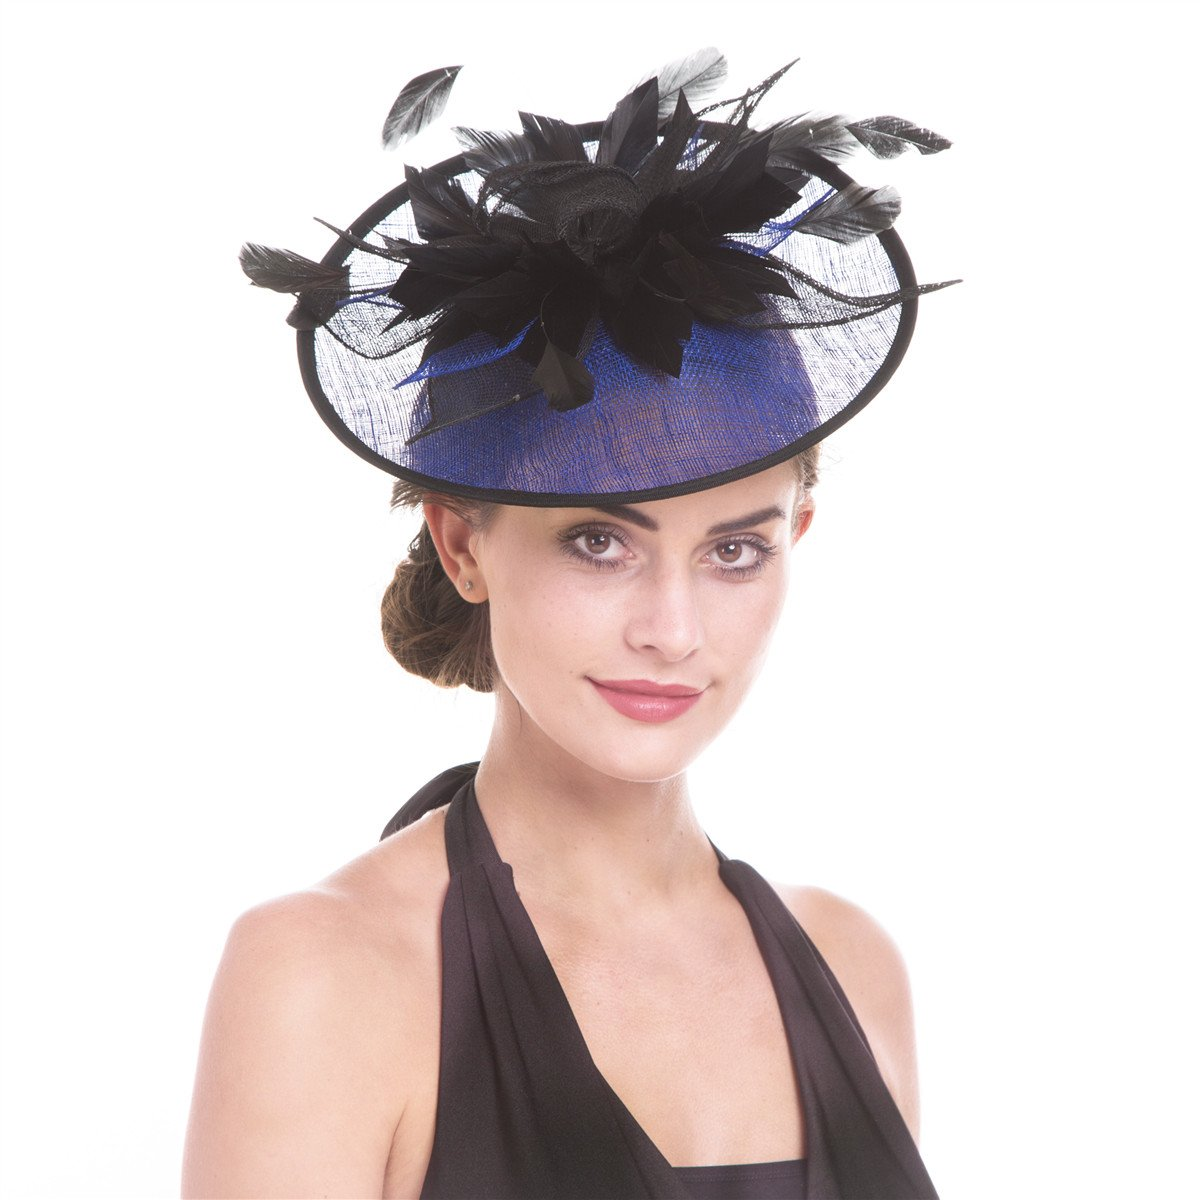 SAFERIN Fascinator Hat Feather Mesh Net Veil Party Hat Flower Derby Hat with Clip and Hairband for Women (TB3-Sapphire Blue/Black)